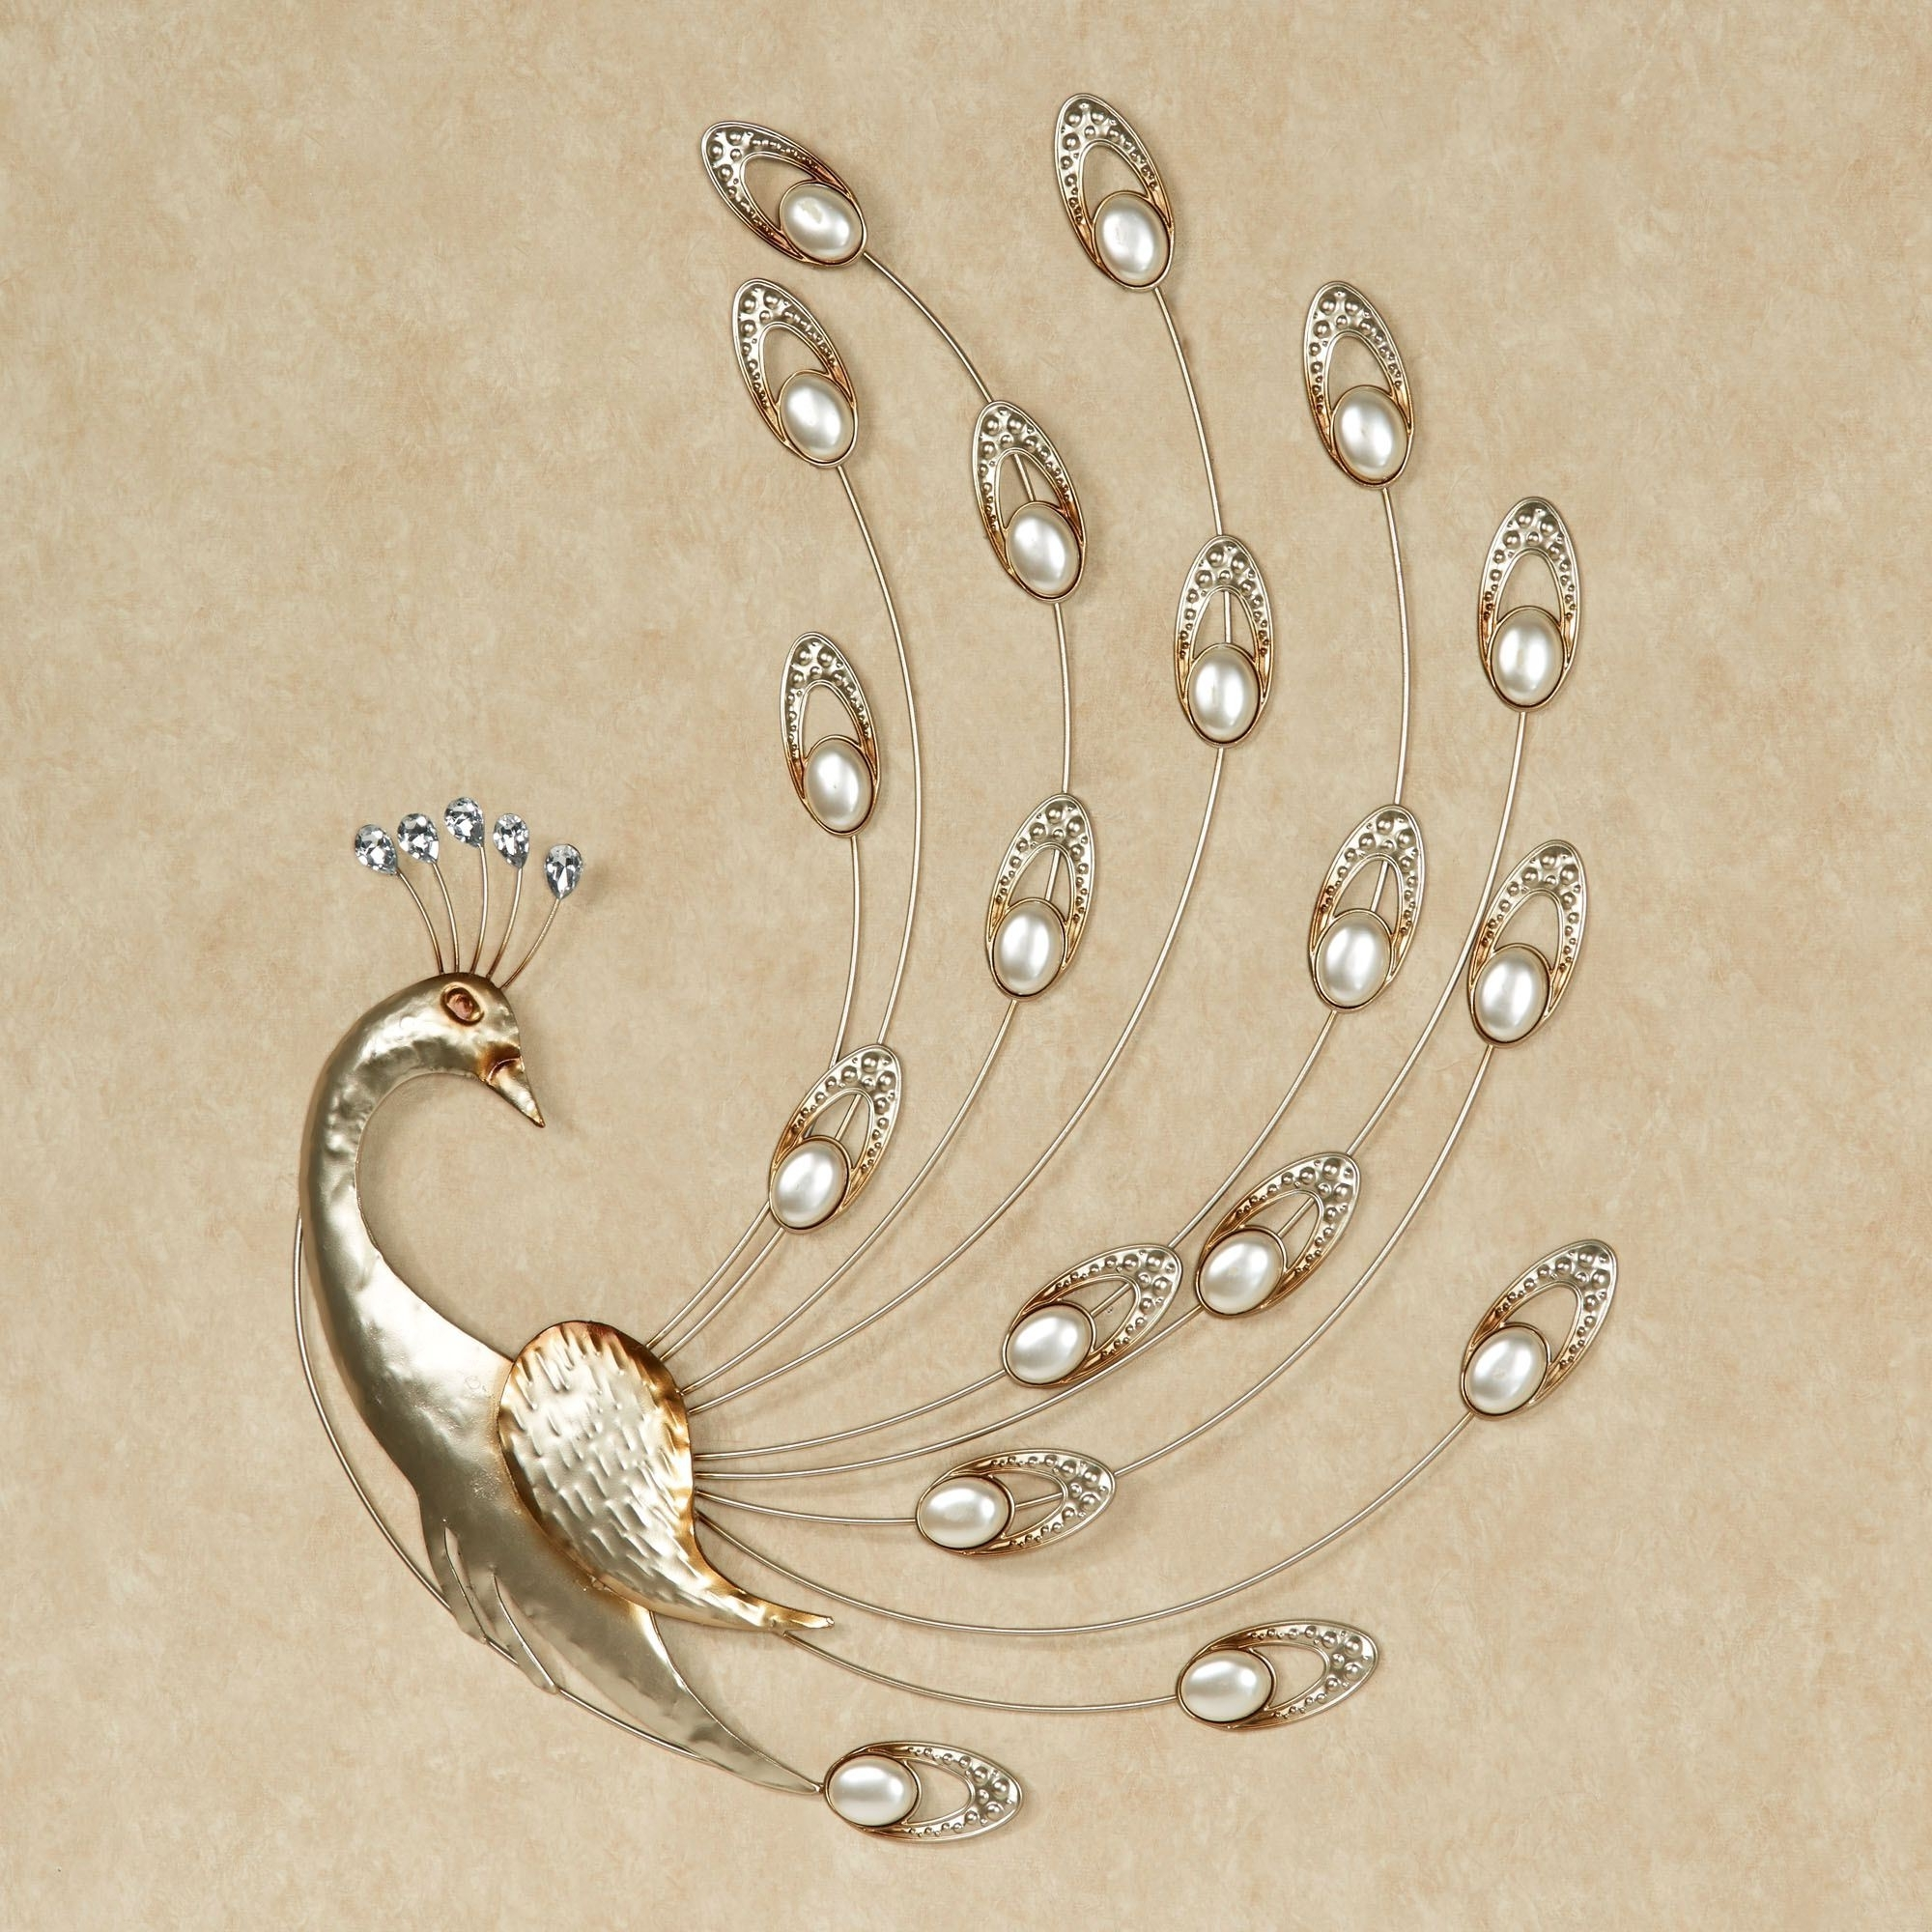 Fashionable Julietta Pearl Peacock Metal Wall Art With Regard To Metal Peacock Wall Art (View 4 of 15)